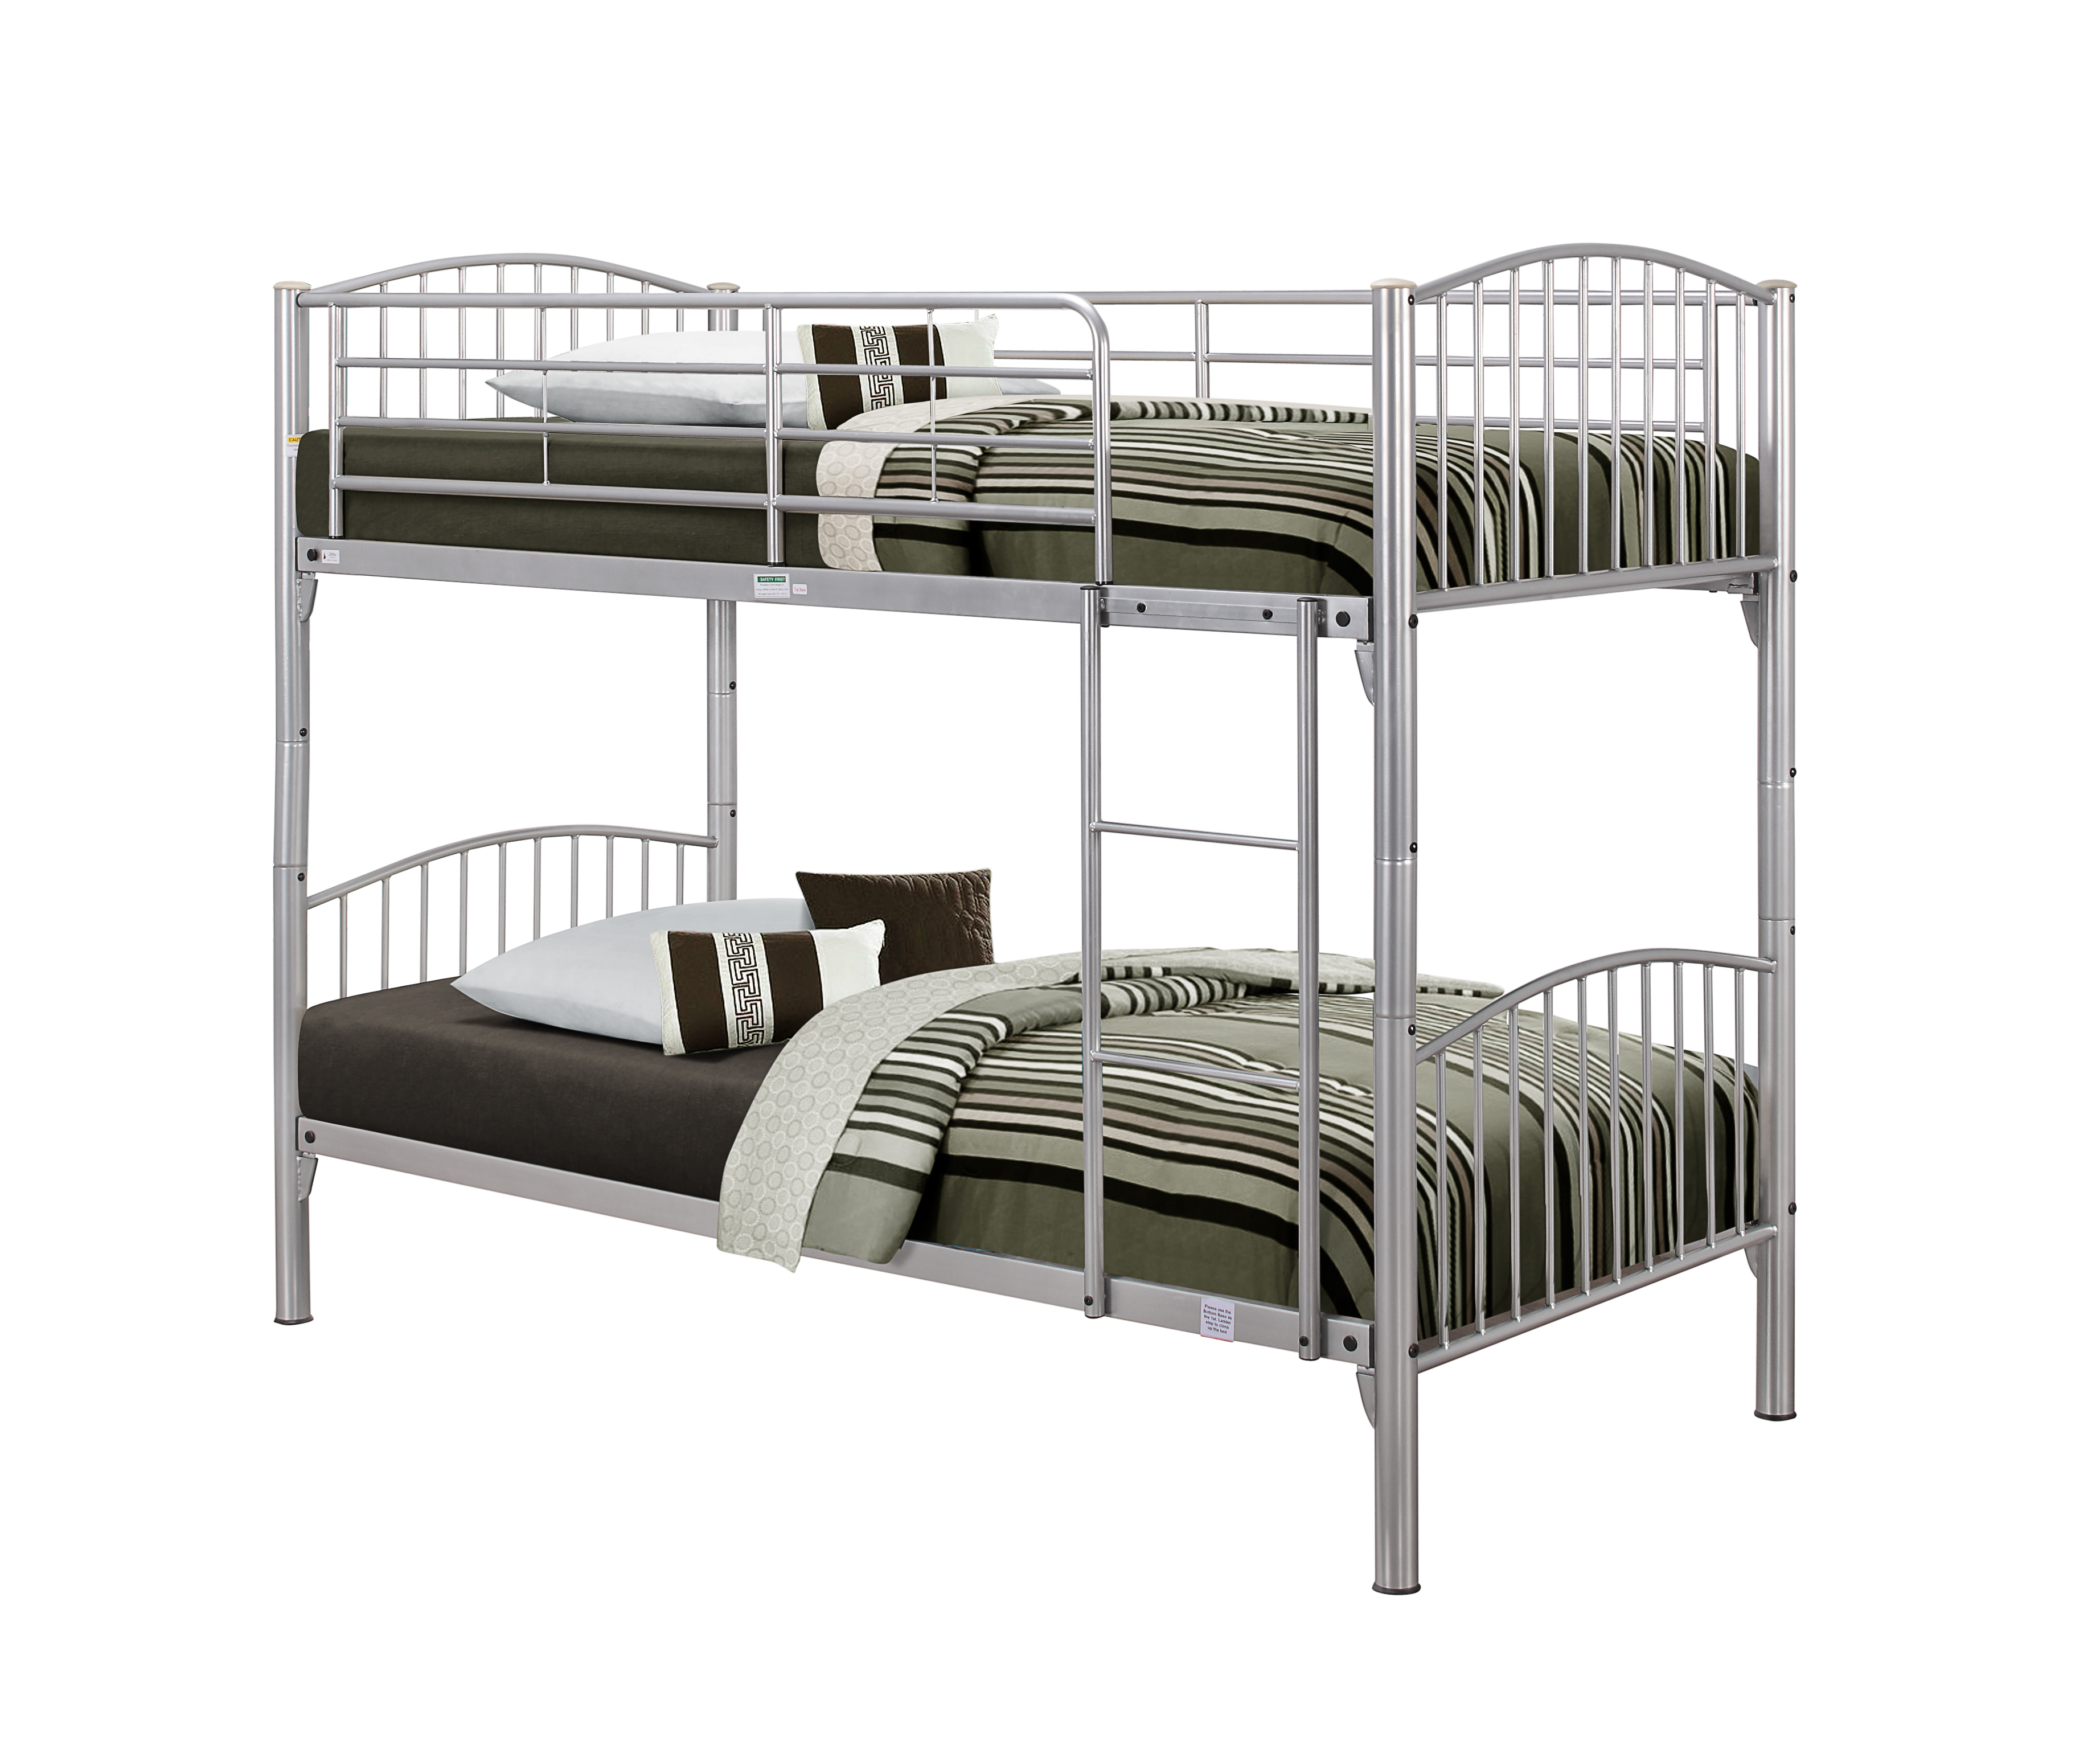 Corfu Metal Bunk Bed Assembly Instructions (Birlea)